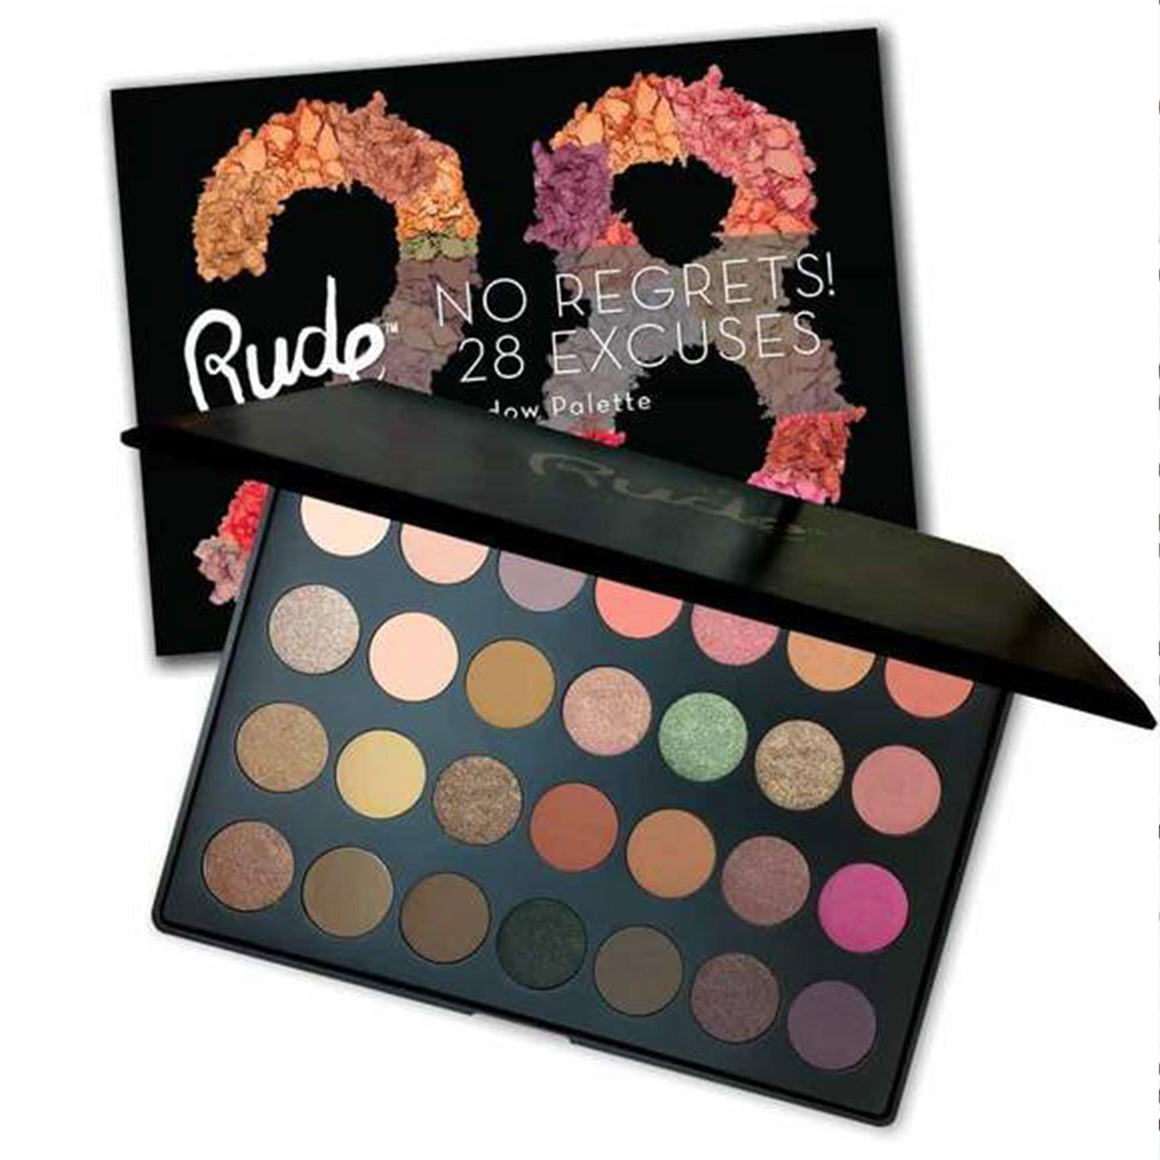 RUDE - No Regrets! 28 Excuses Eyeshadow Palette - Virgo